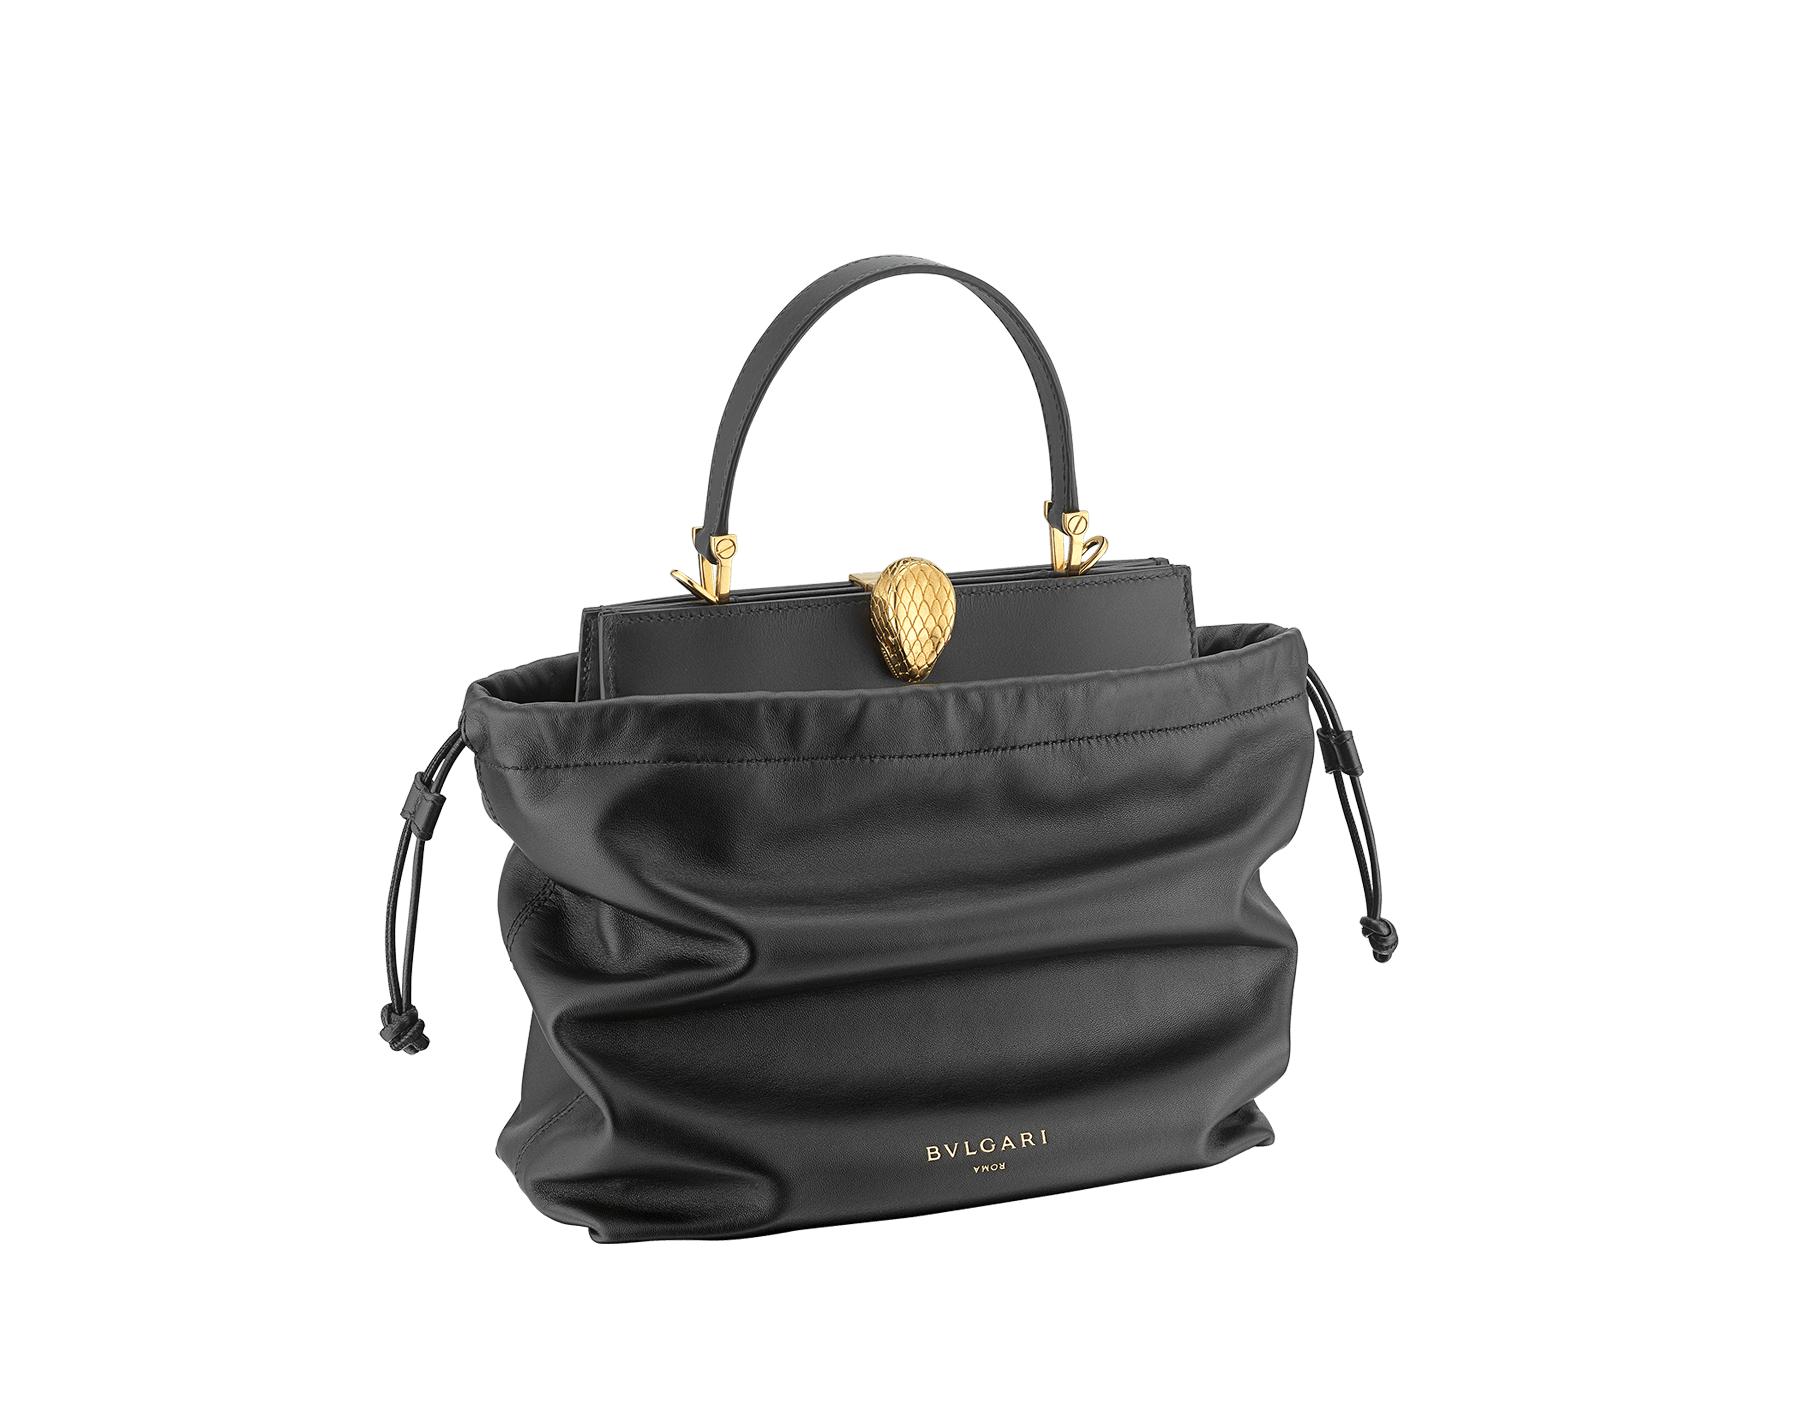 Alexander Wang x Bvlgari 2 in 1 satchel bag in black calf leather with black lambskin drawstring dust bag exterior. New Serpenti head closure in antique gold plated brass with tempting red enamel eyes. Limited edition. 288747 image 2